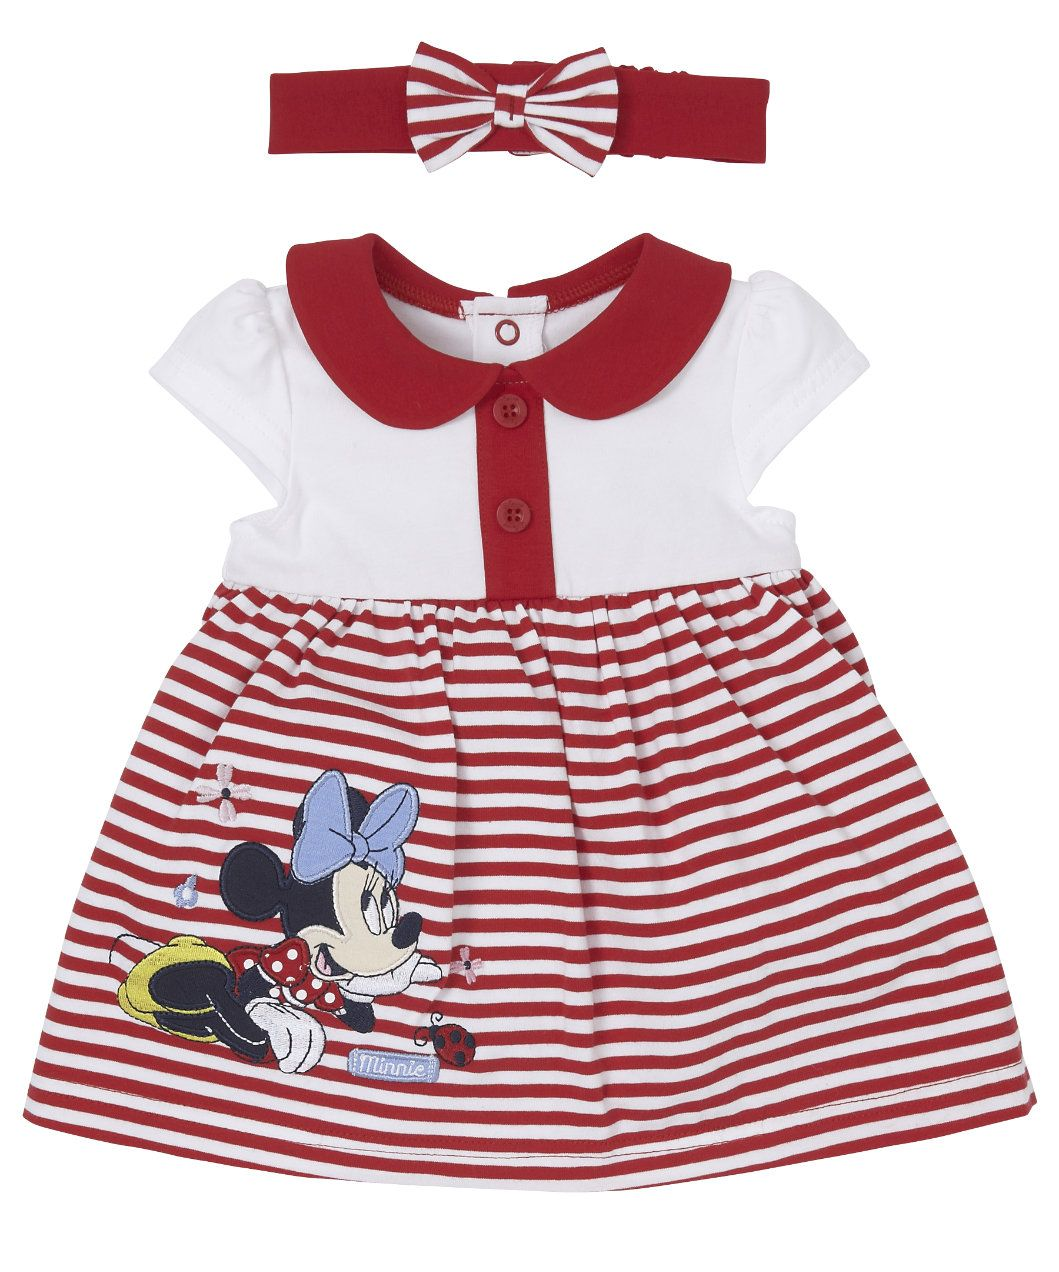 239bdfe7a Disney Minnie Mouse Romper Dress and Headband - dresses - Mothercare ...